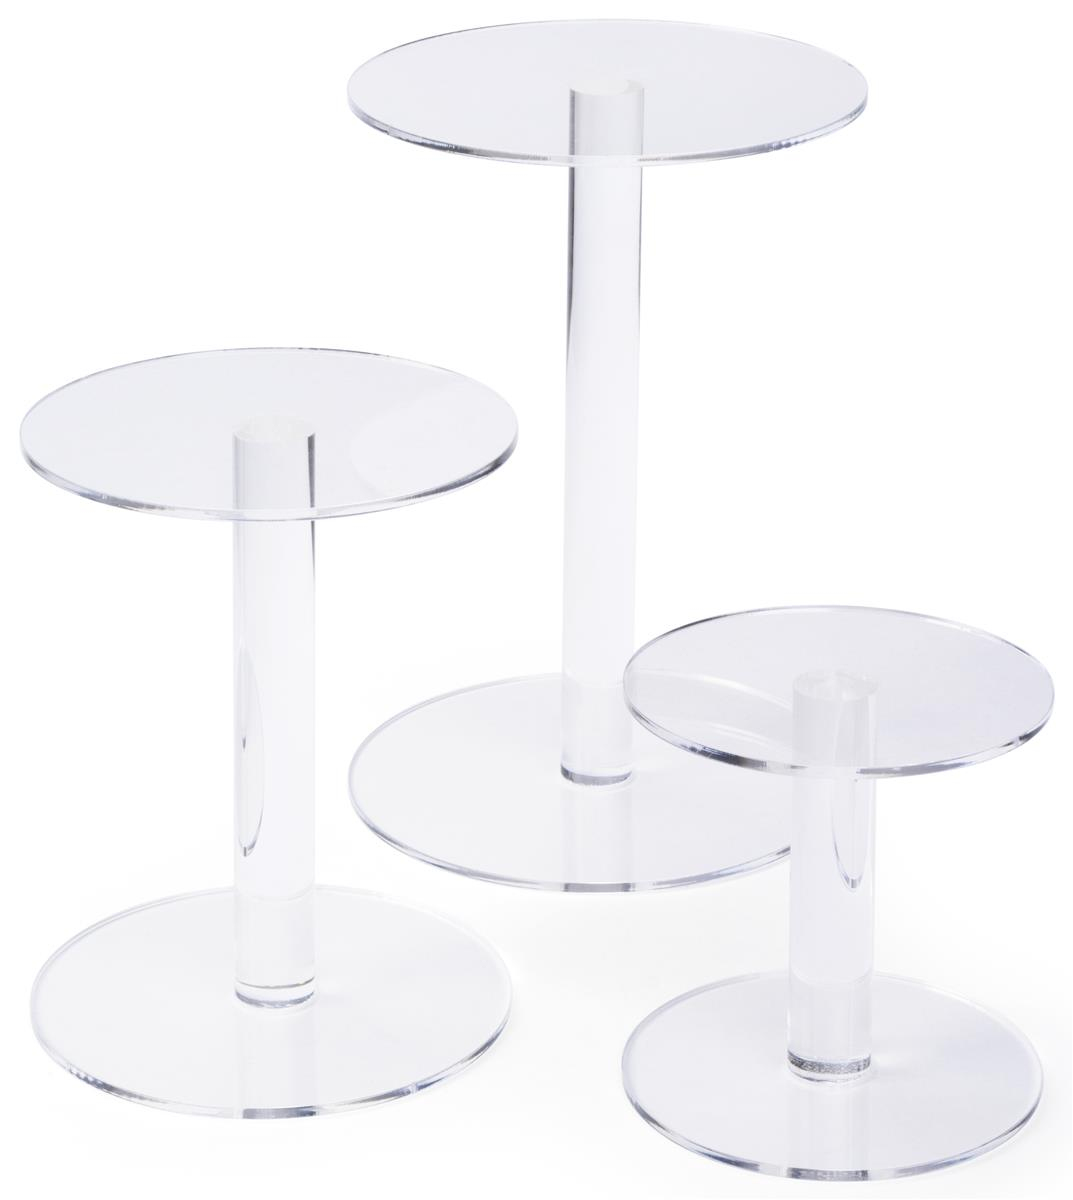 Acrylic Pedestal Risers Clear Construction